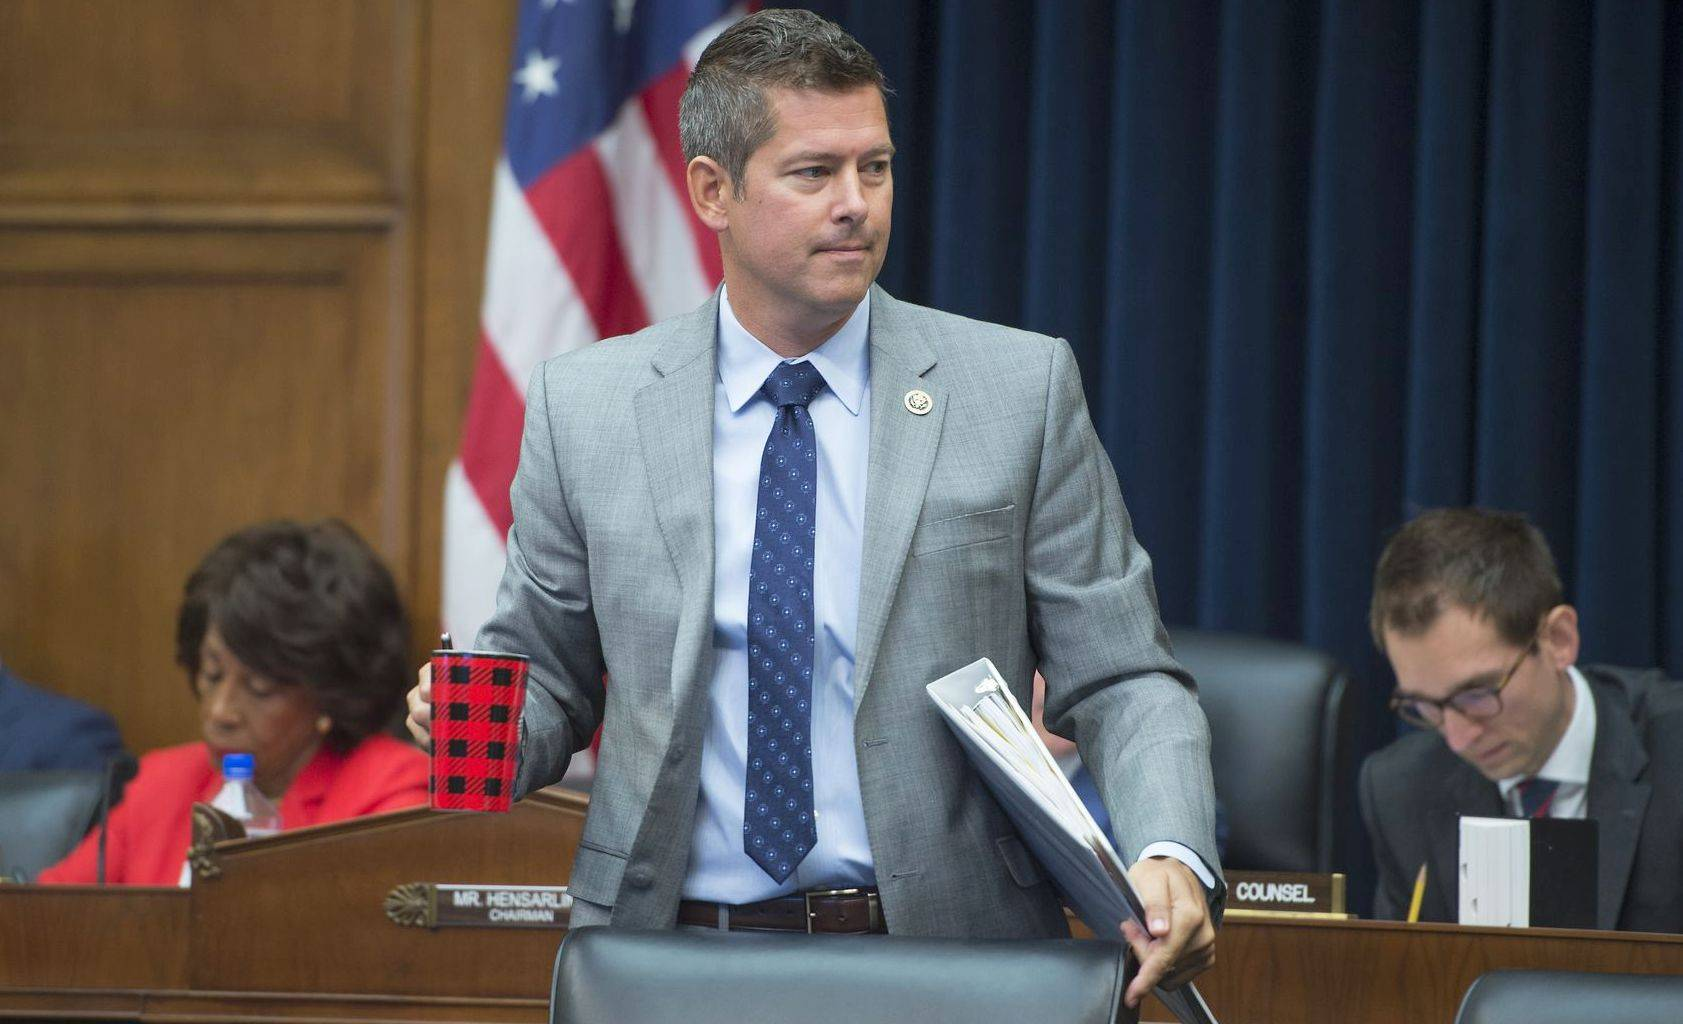 Sean Duffy COngressman